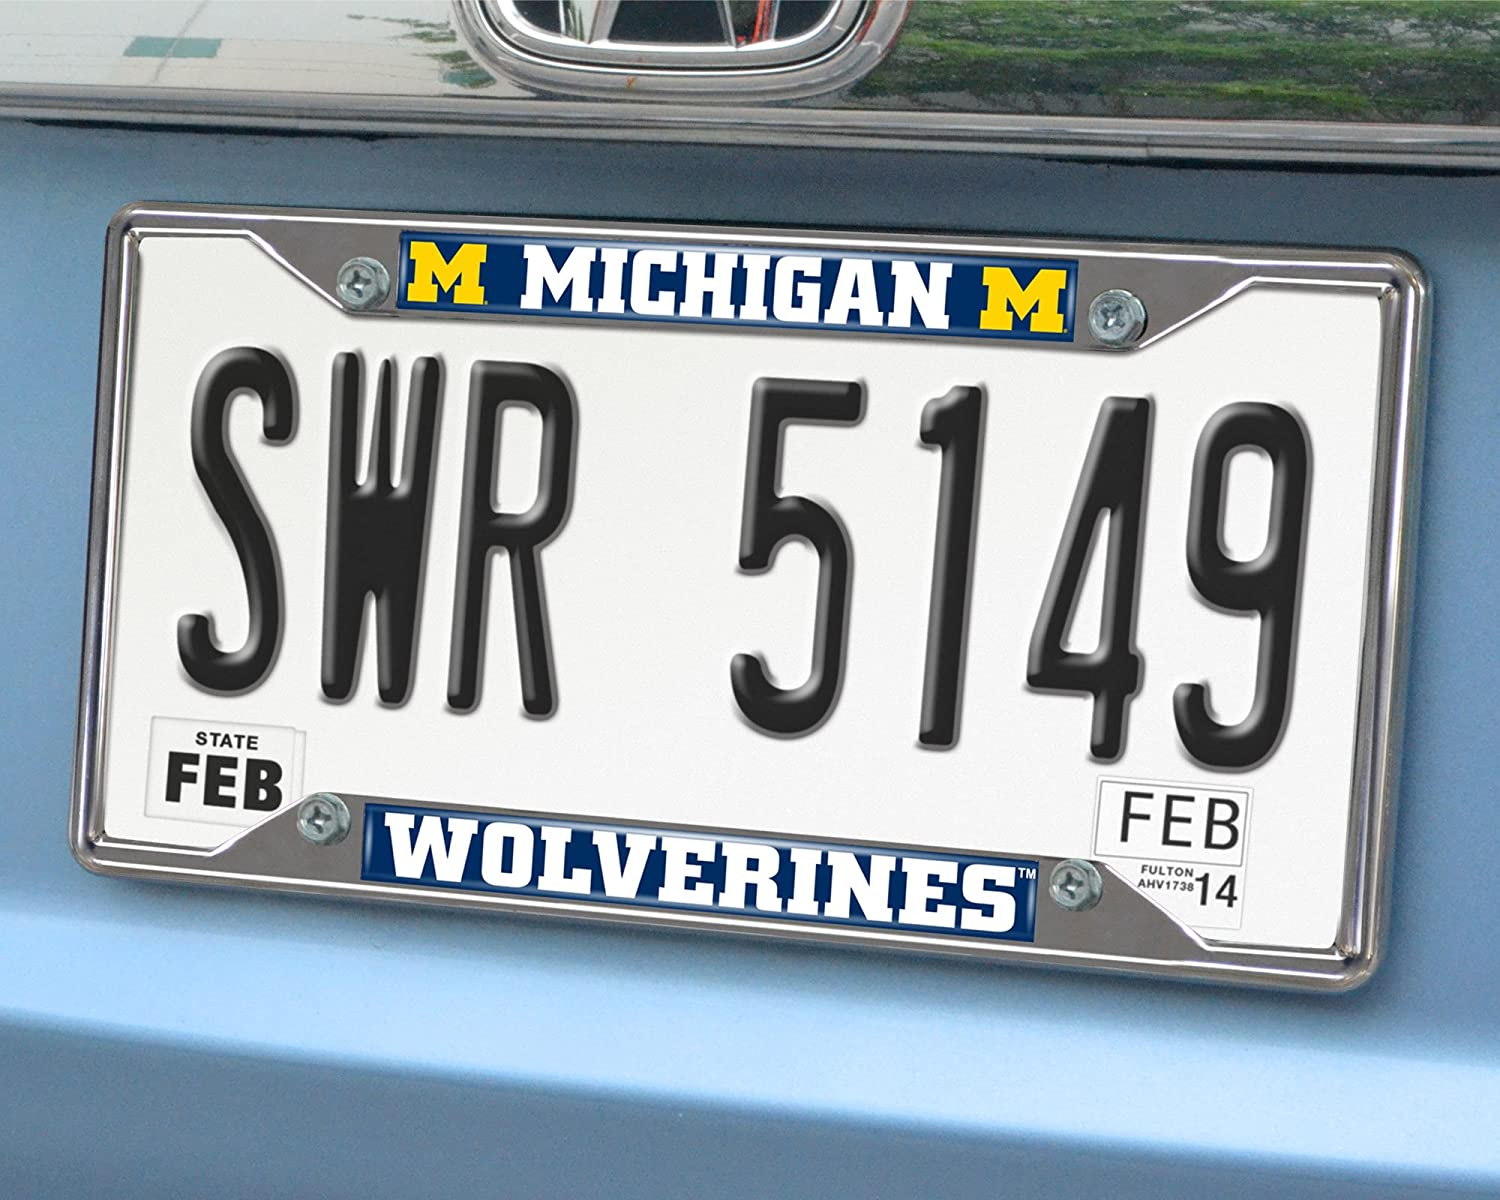 FANMATS 14823 NCAA University of Michigan Wolverines Chrome License Plate Frame 6.25x12.25